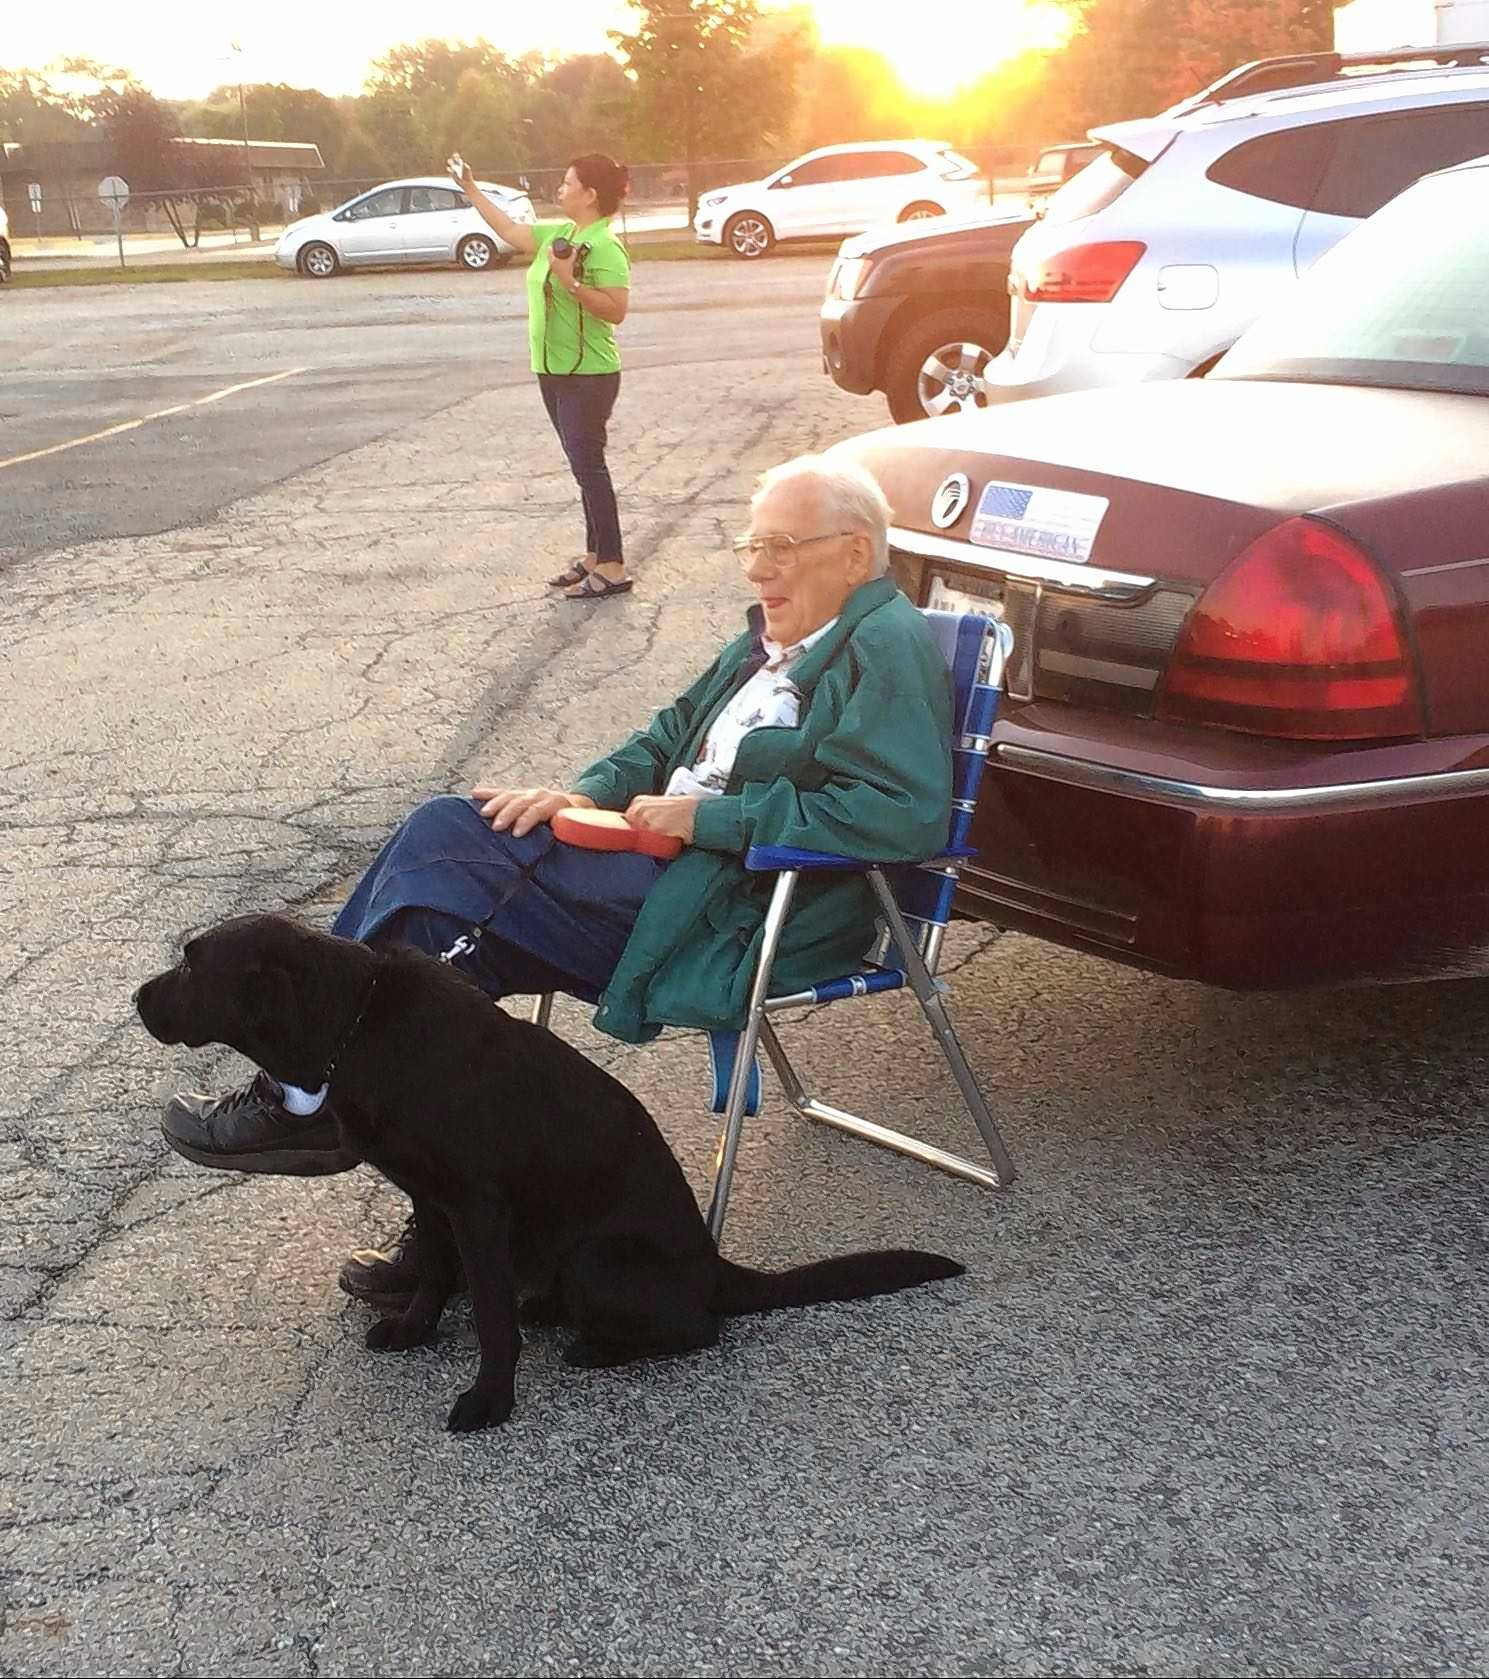 As a teenager, Herb Wehling drove a military Jeep across Europe at the end of World War II. Saturday, the 90-year-old Wheaton resident and his rescue dog, Knucklehead, venture out at sunrise to watch a convoy of similar antique military vehicles began a 29-day, cross-country convoy to California.